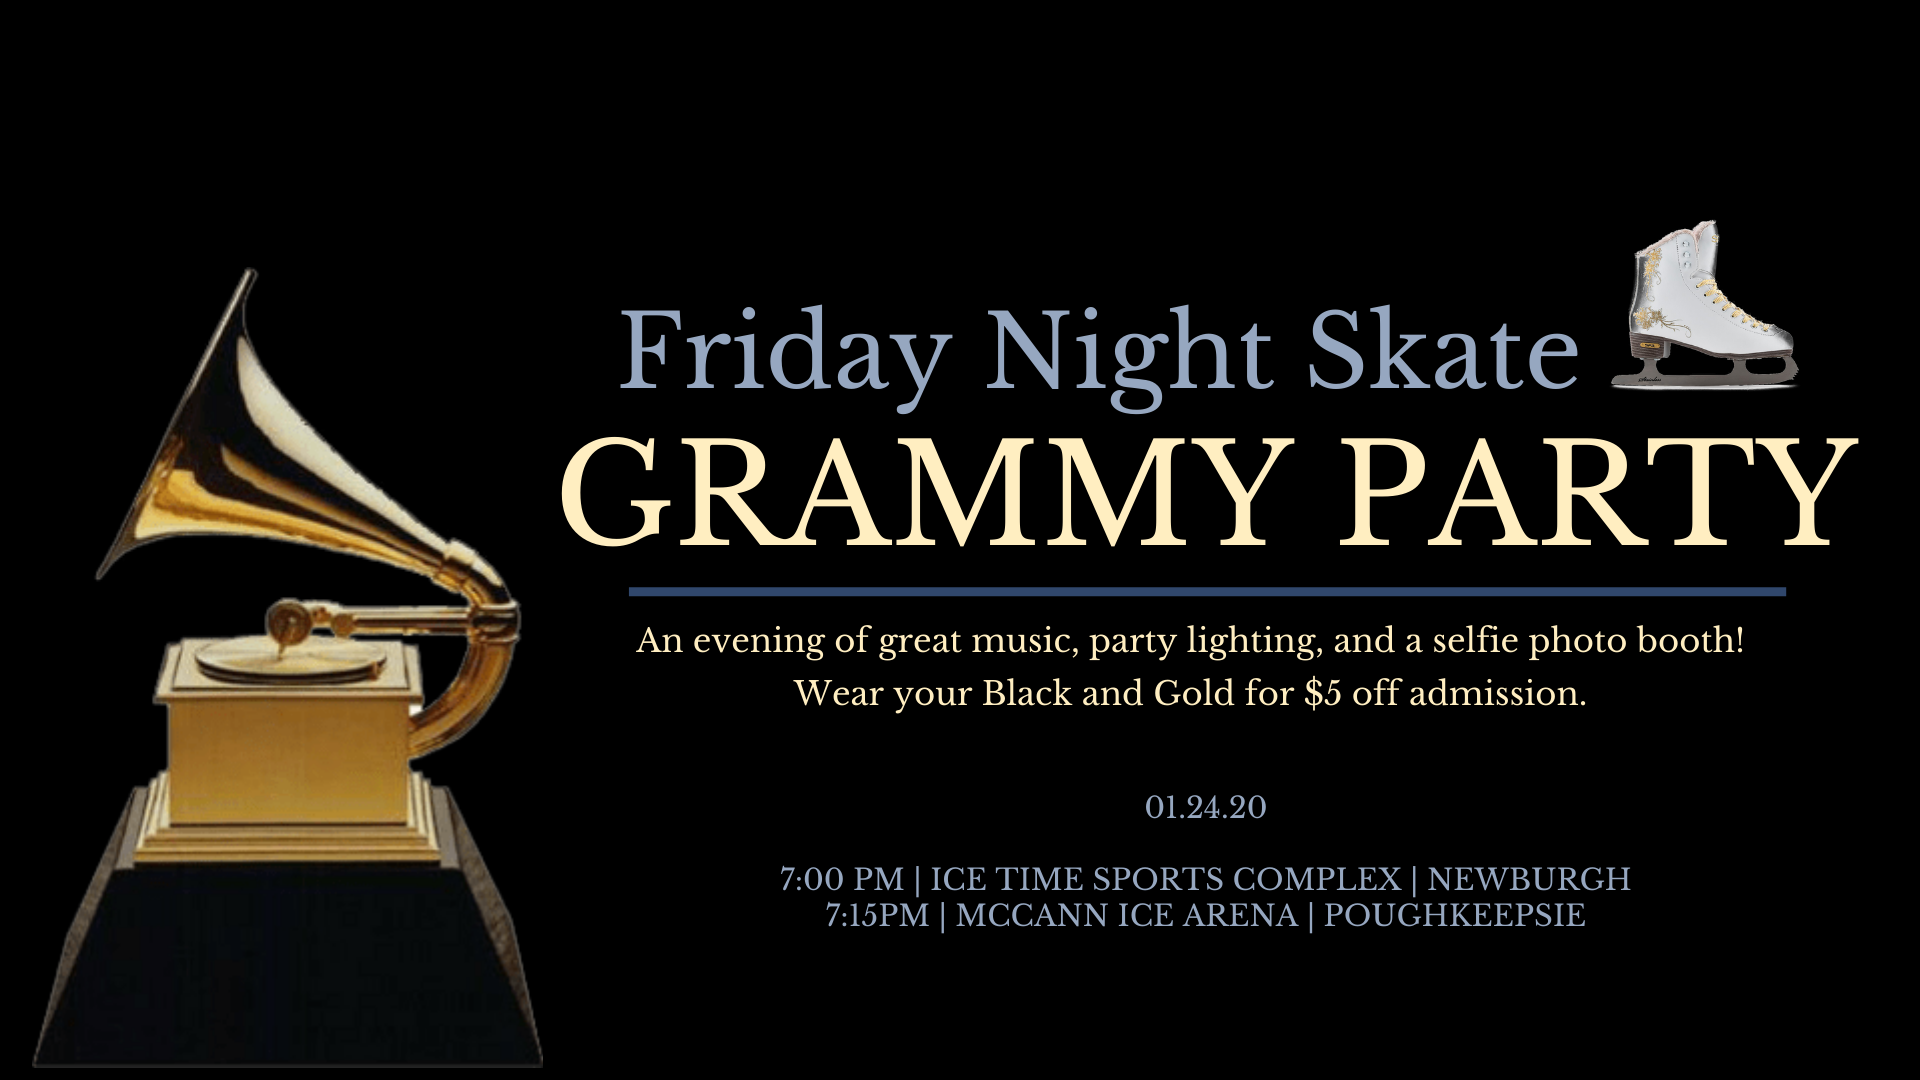 Grammy Party Skate